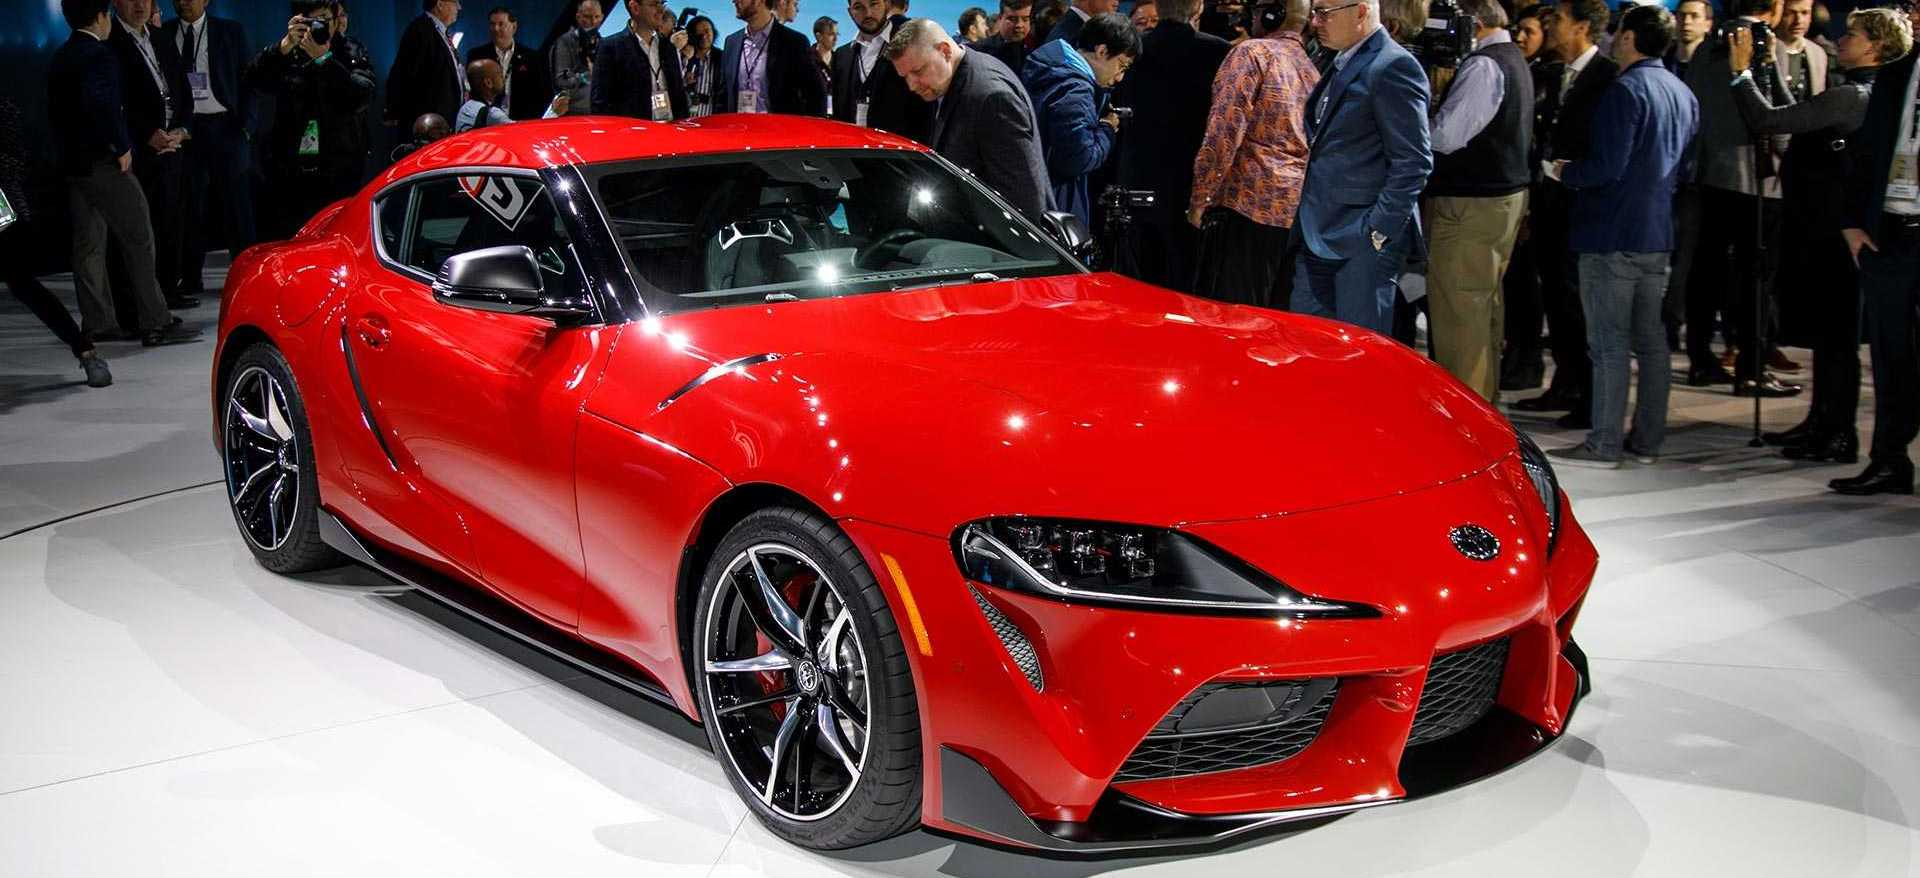 Toyota Supra Without BMW Tie-Up Would've Been Over $100K